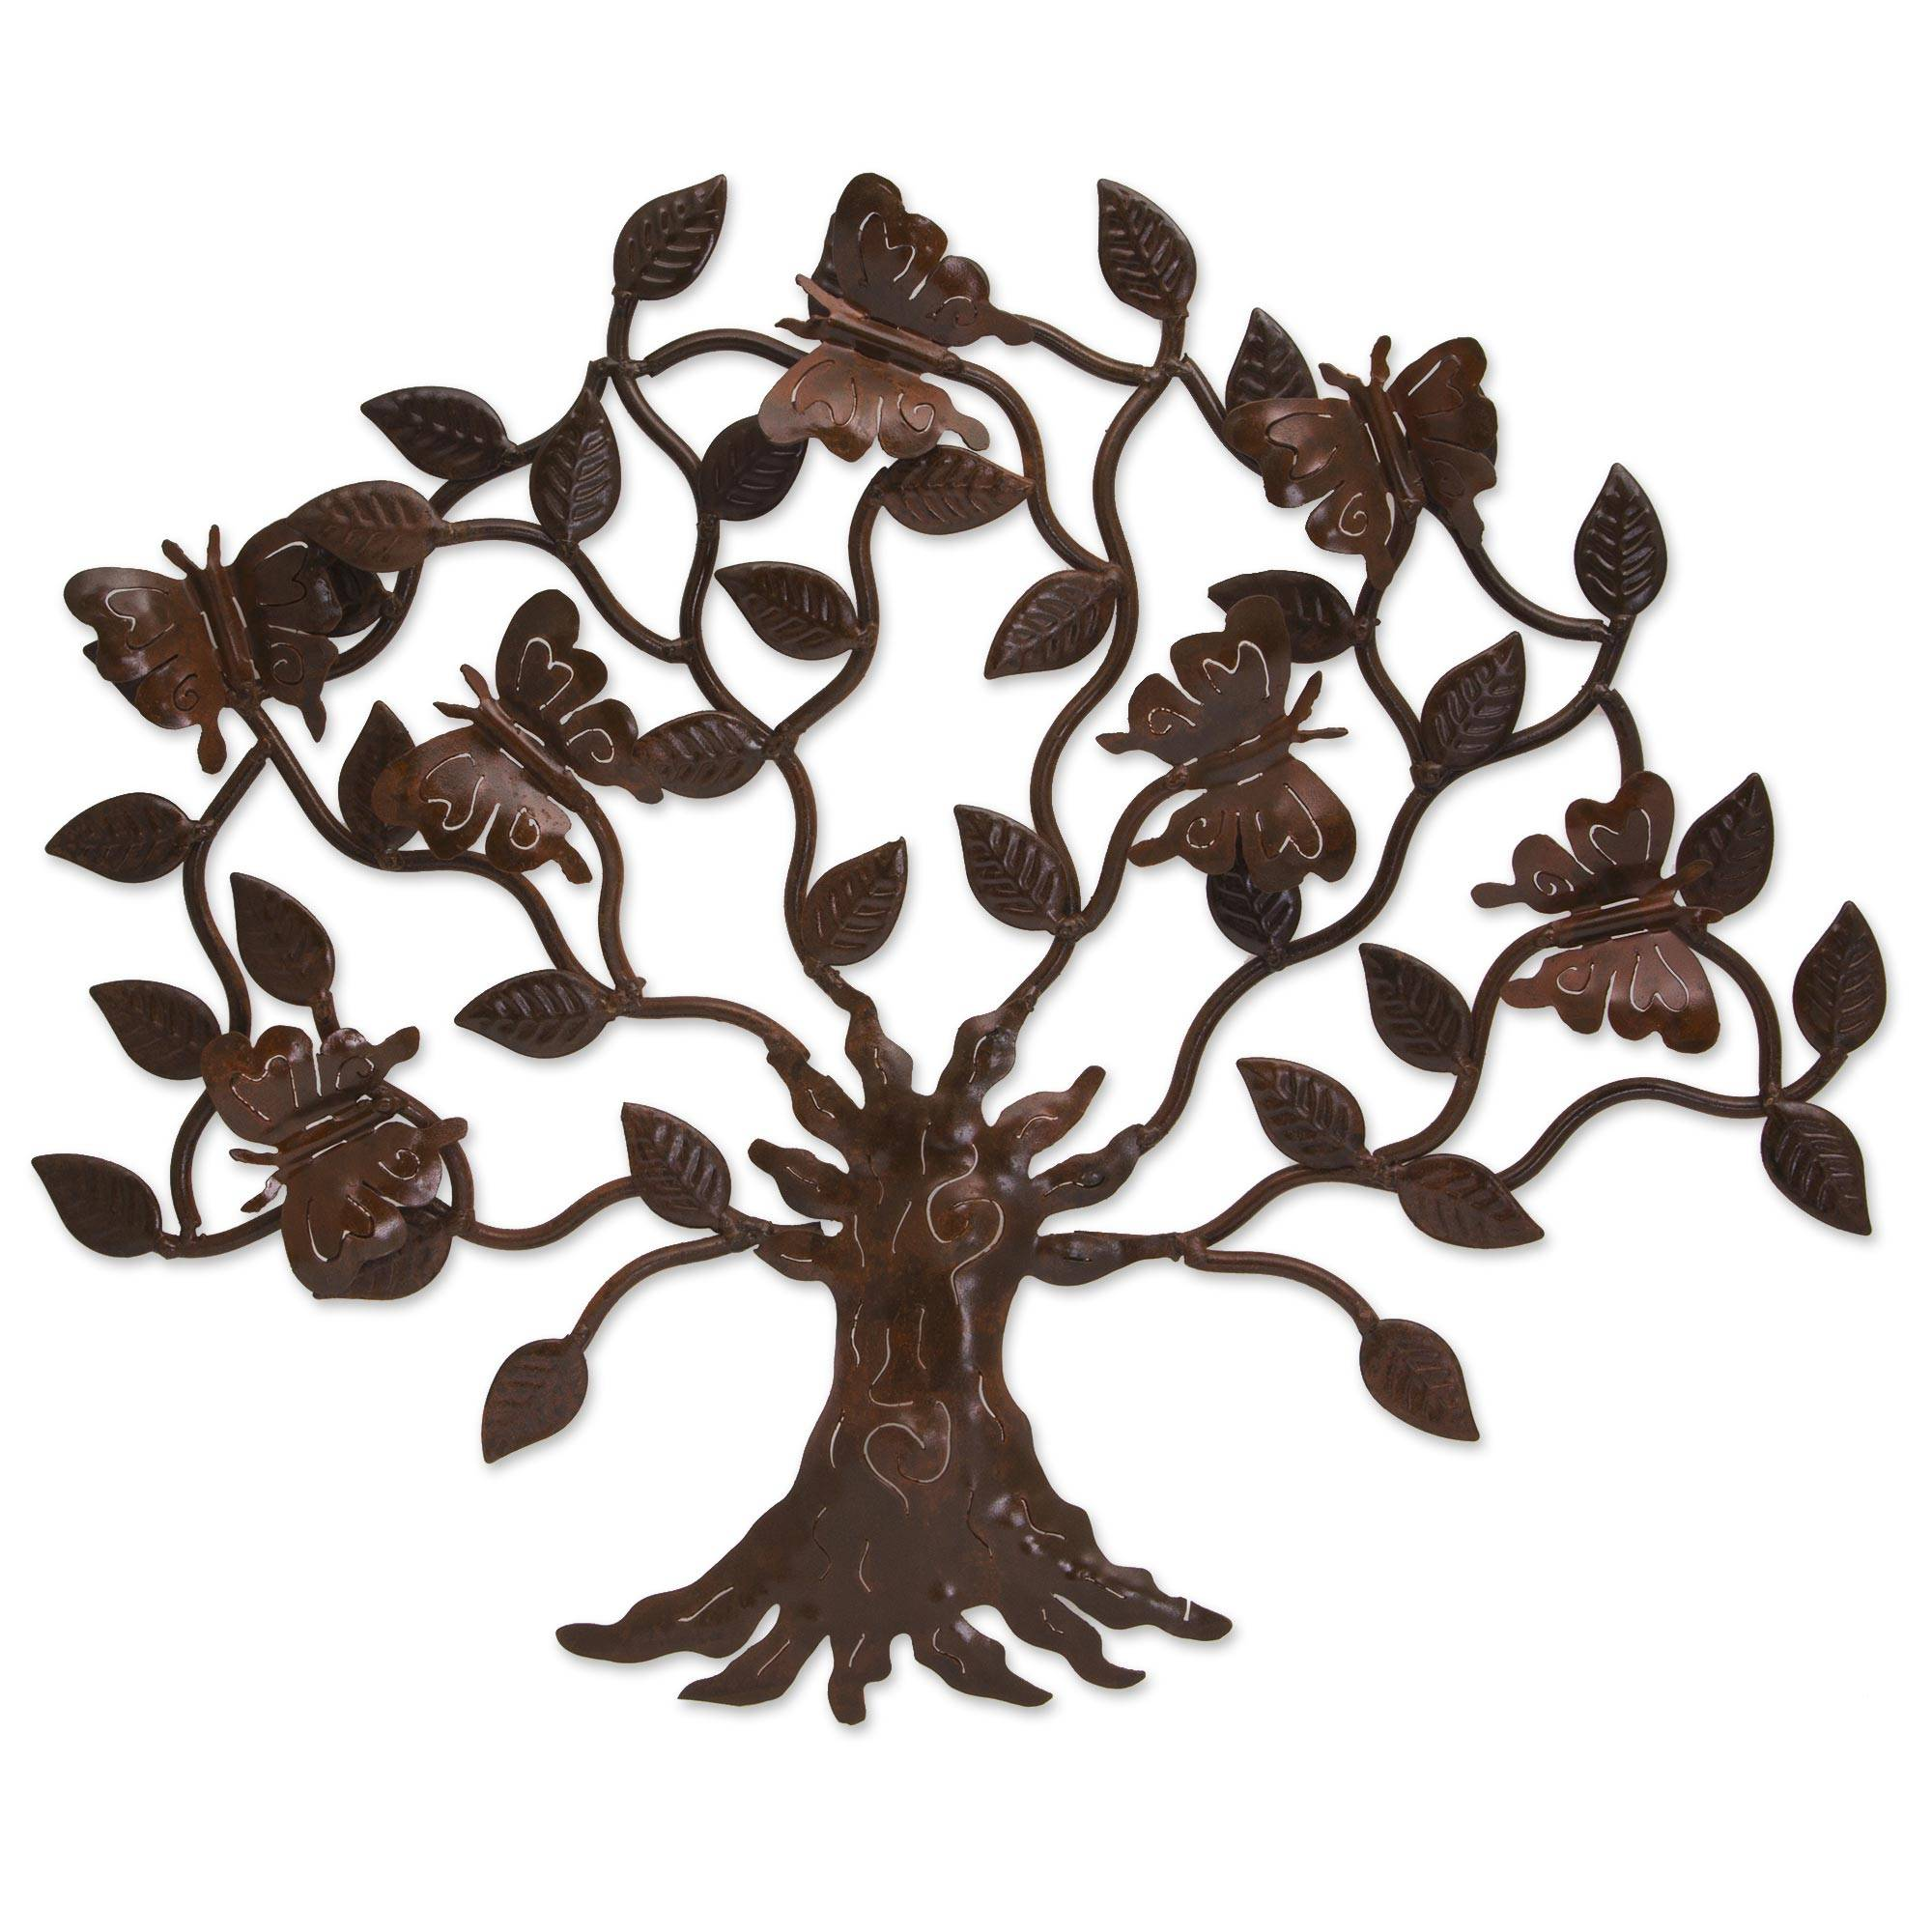 Artisan Crafted Iron Wall Decor with Butterfly Motif Butterfly